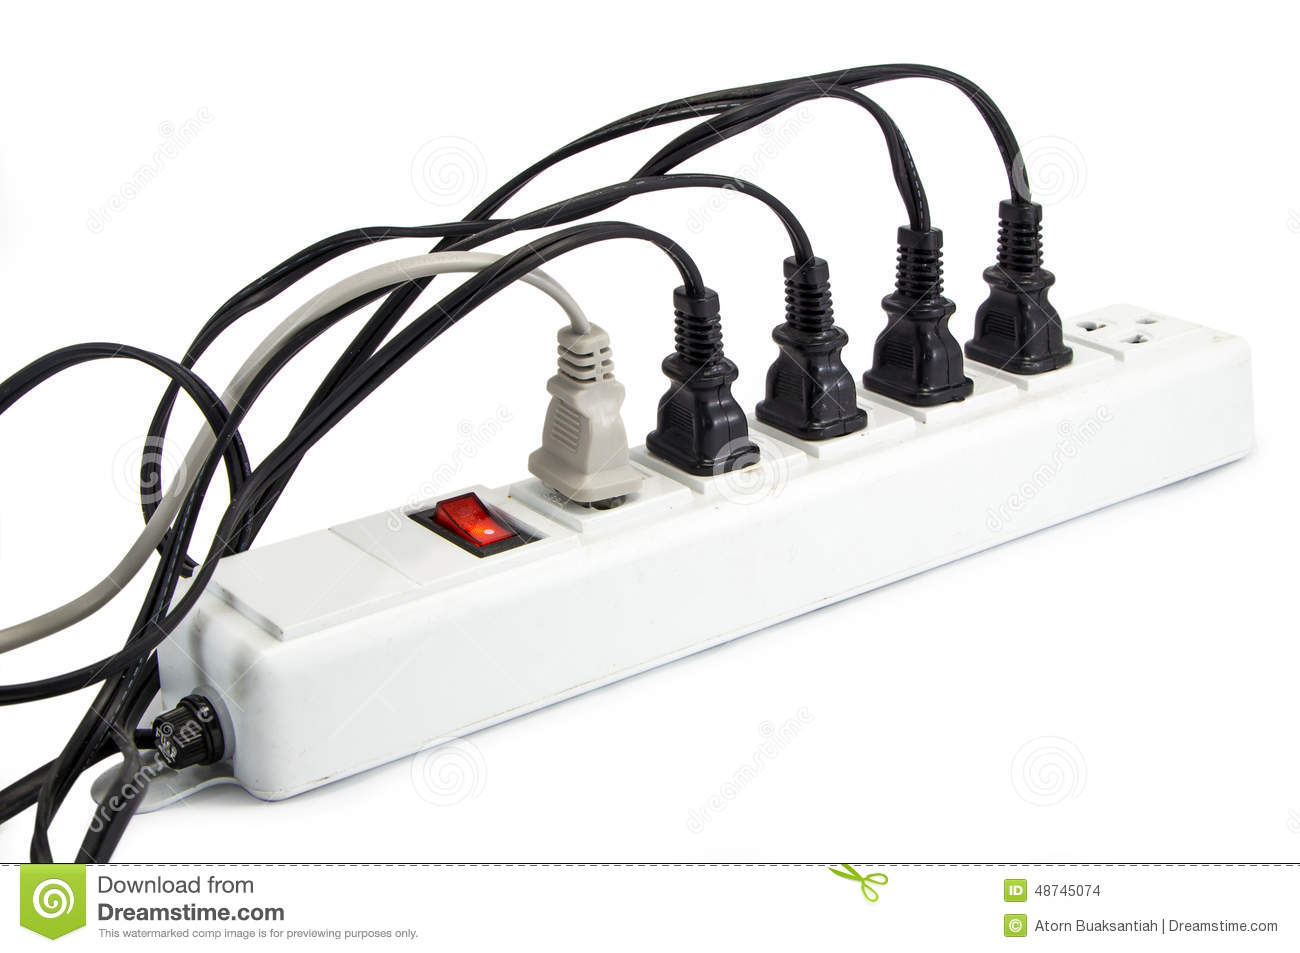 Extension Cord With Plugs Royalty Free Stock Photography.